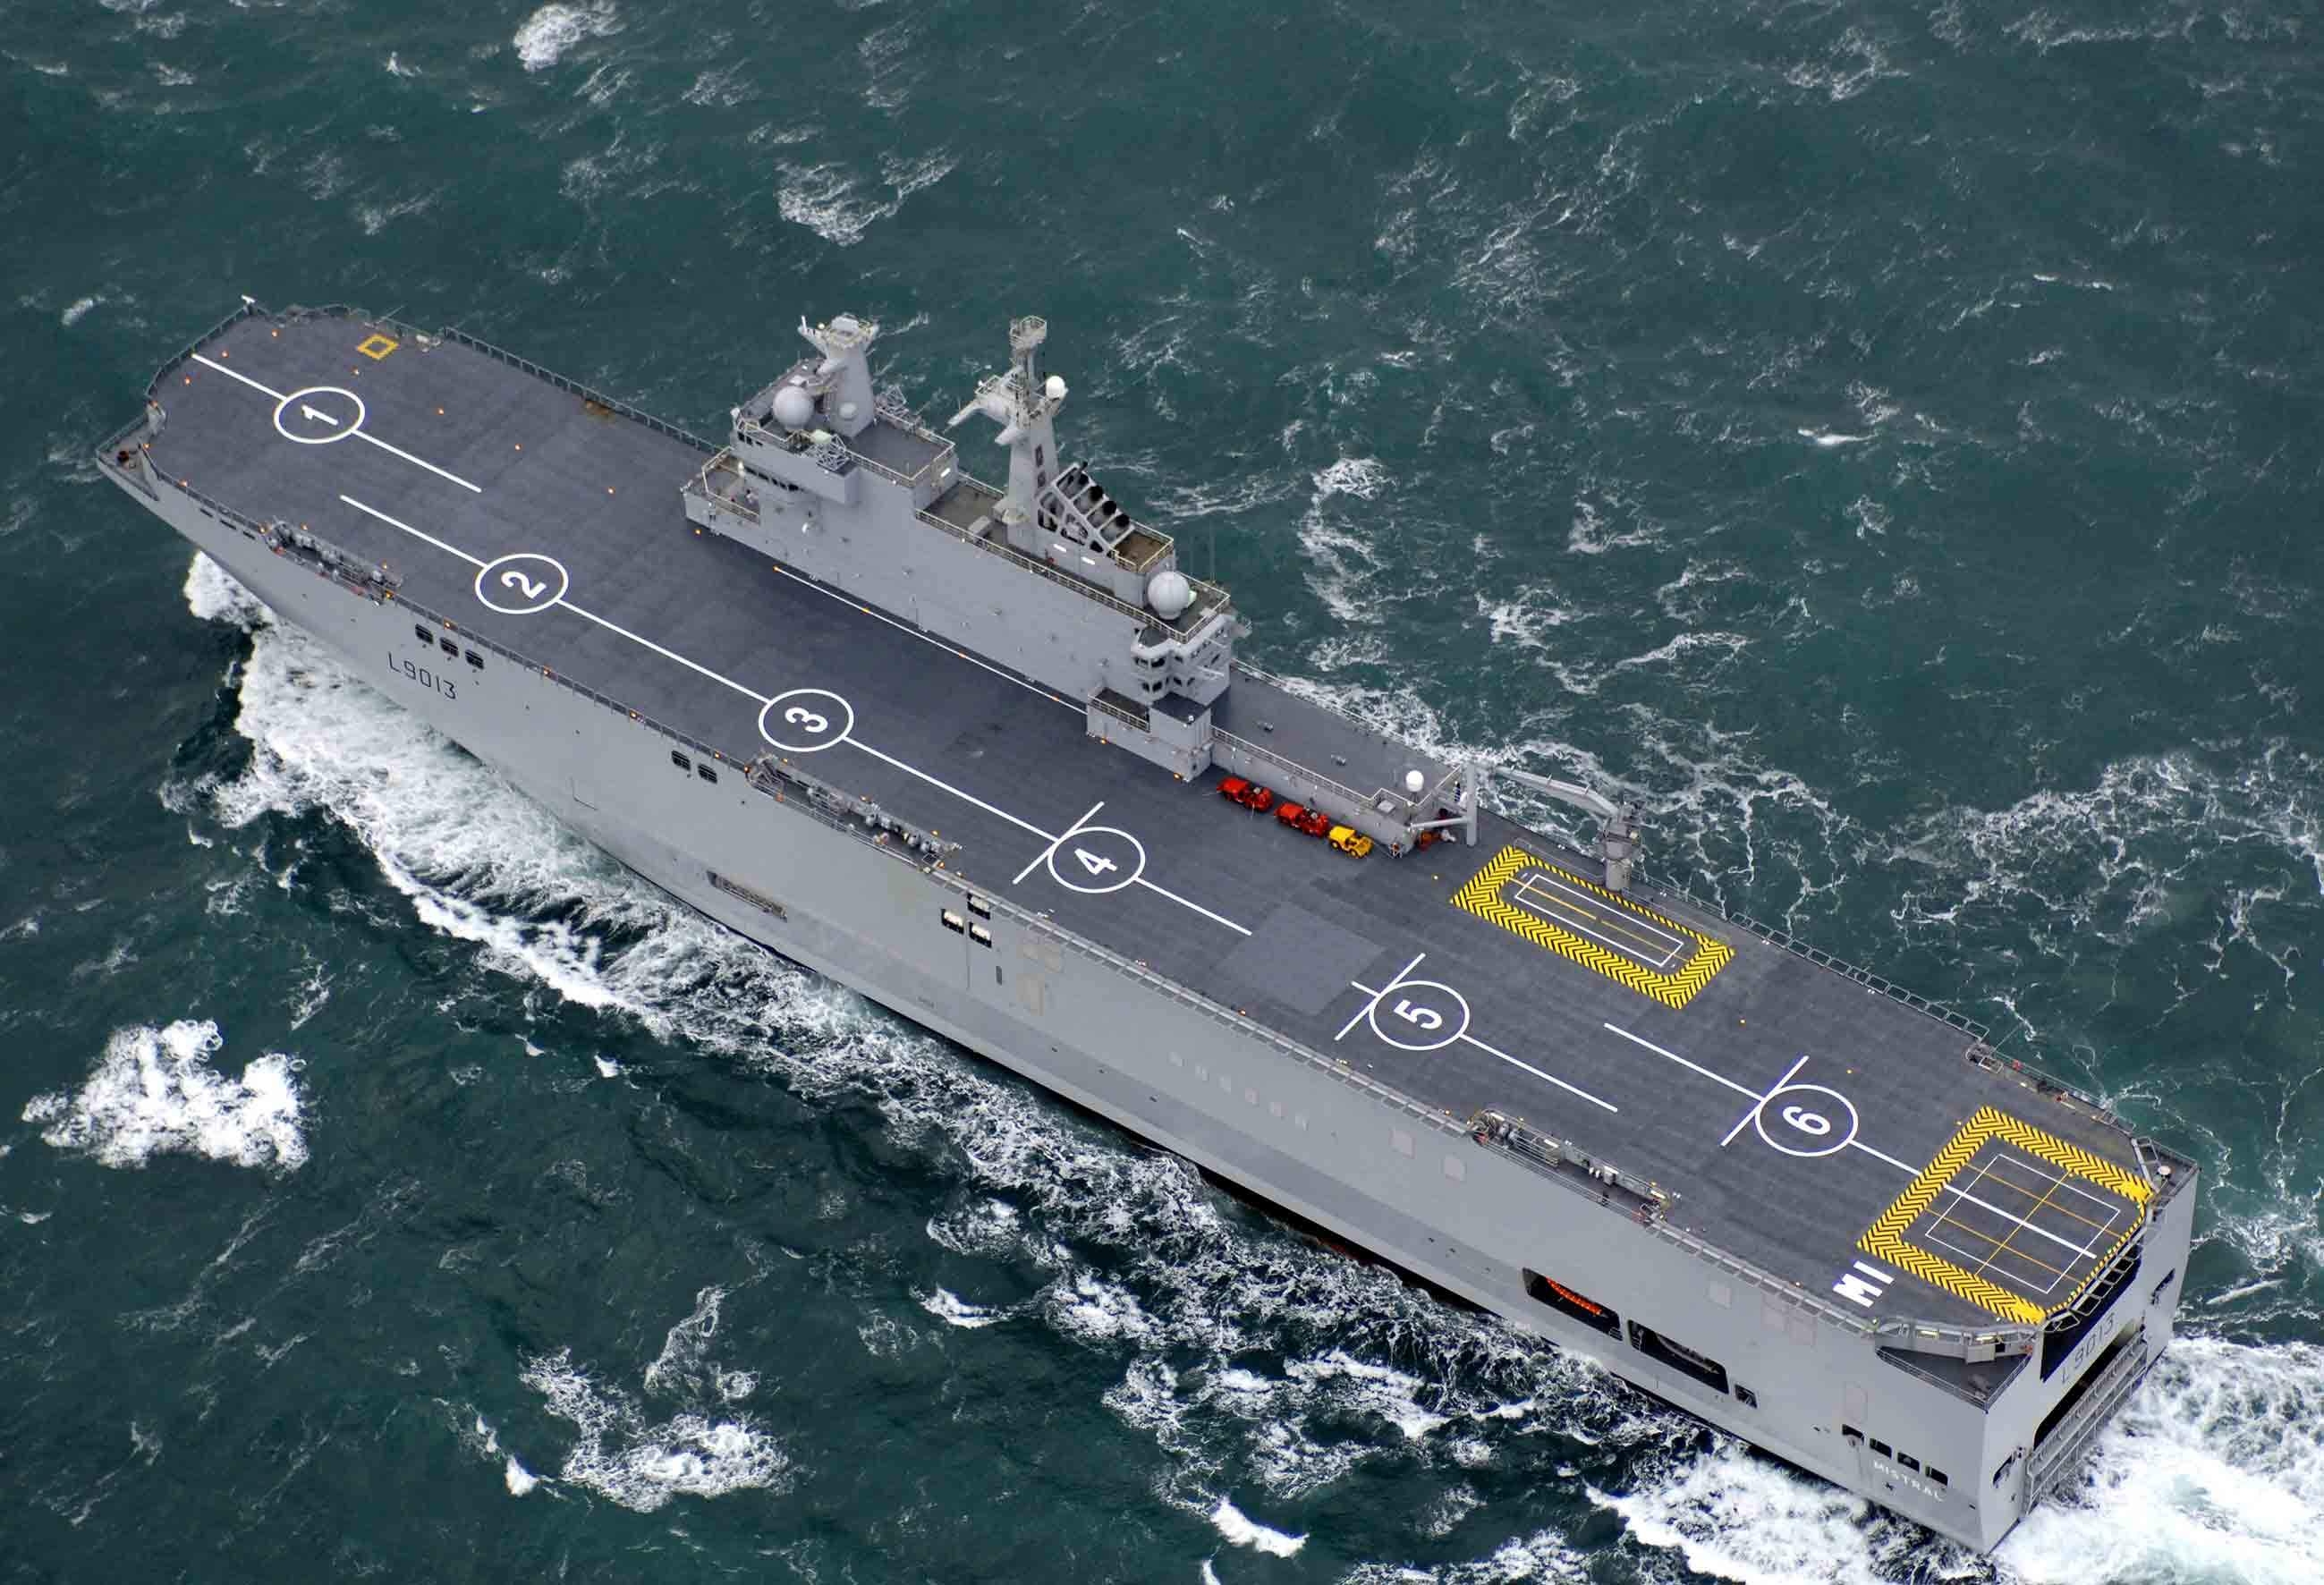 Confusion around Mistral 54